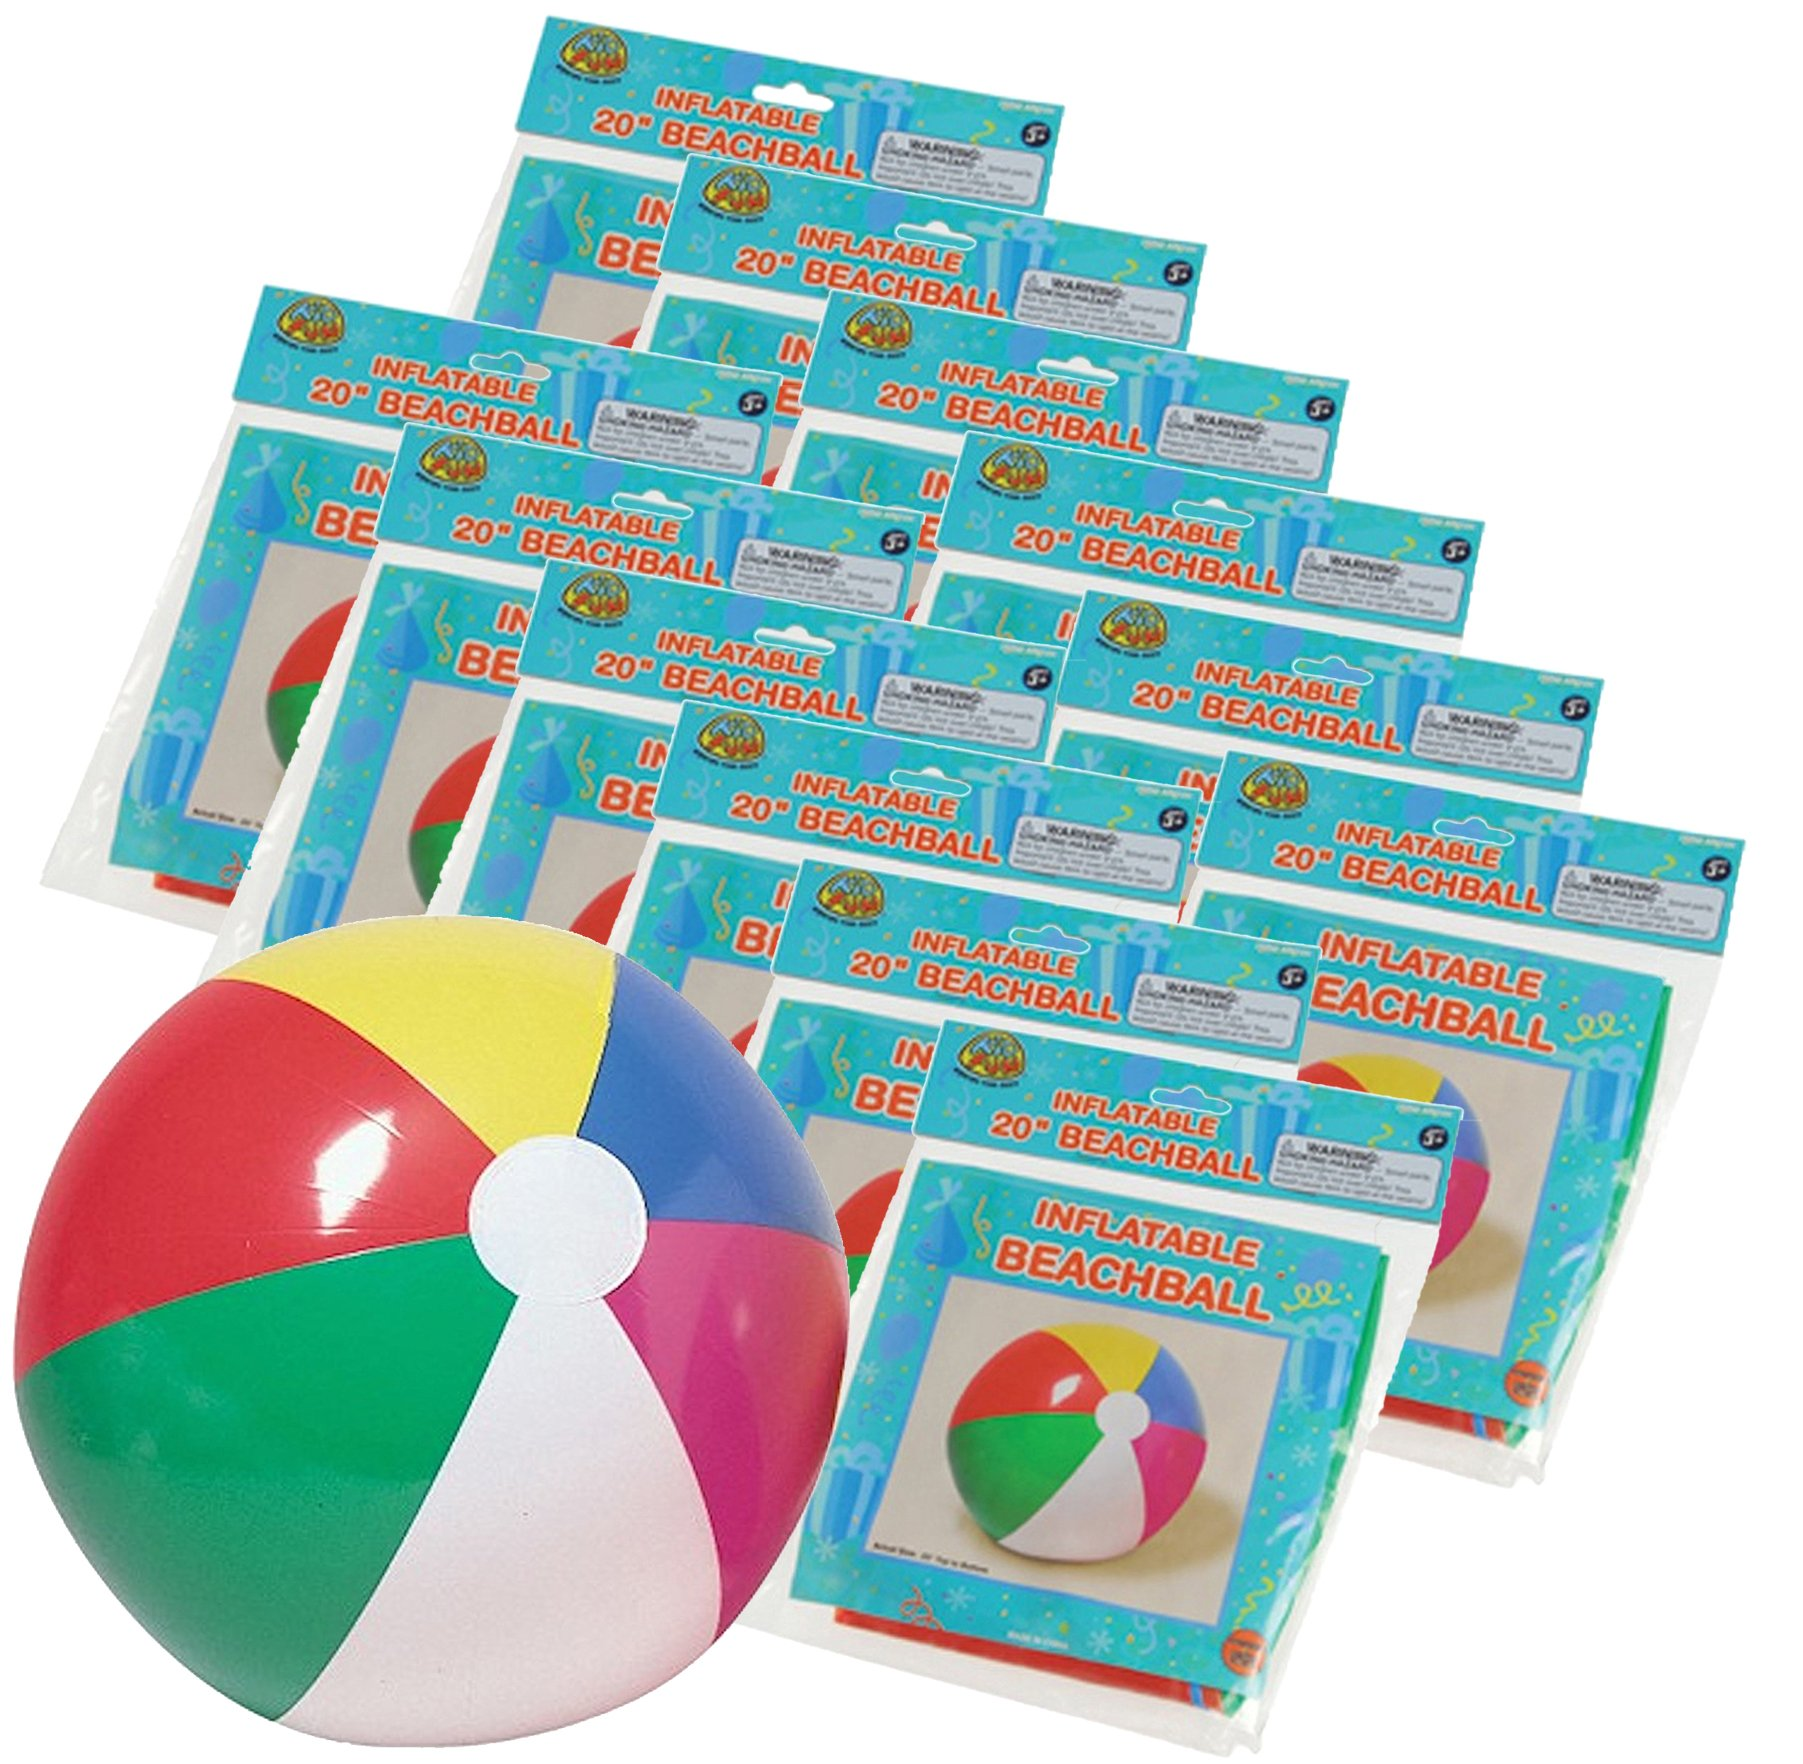 2 DZBeach Ball Inflates 13 Inches- 24 PACK by U.S. Toy